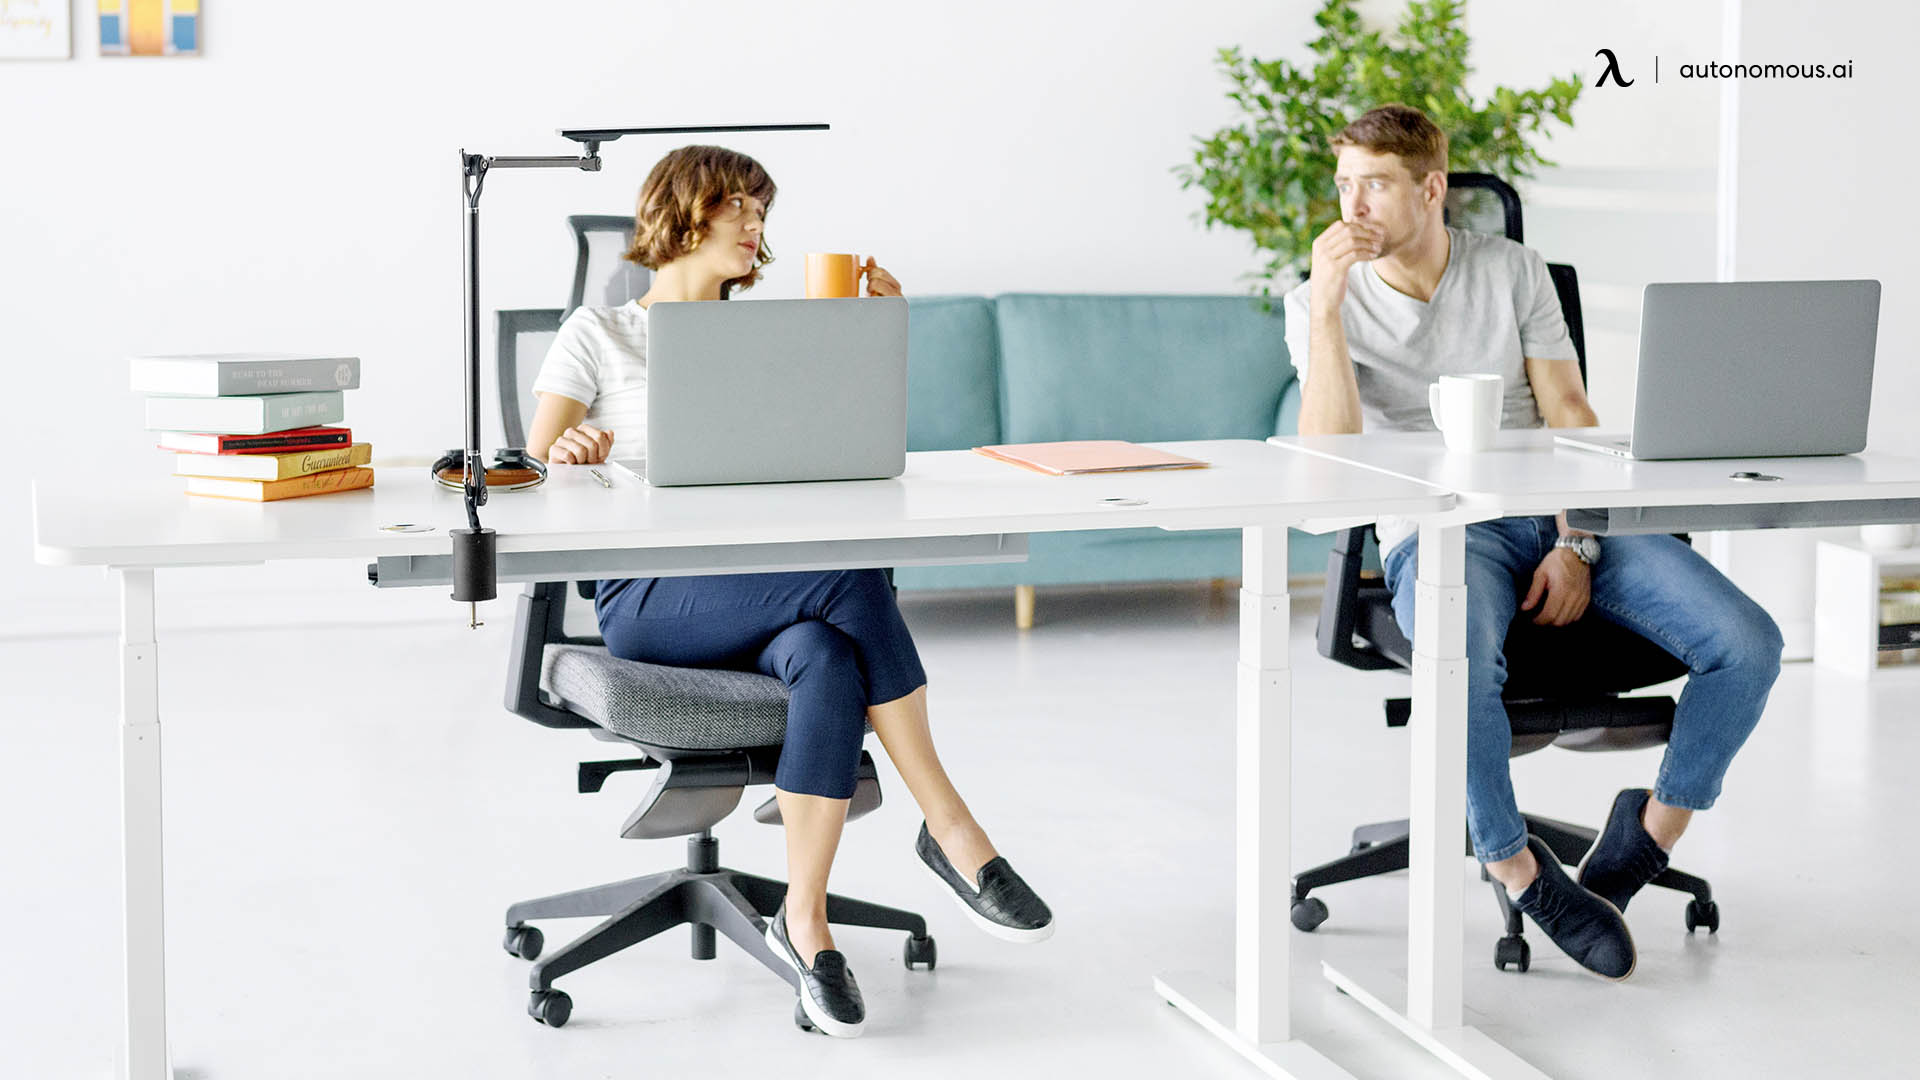 Advantages of employee wellbeing